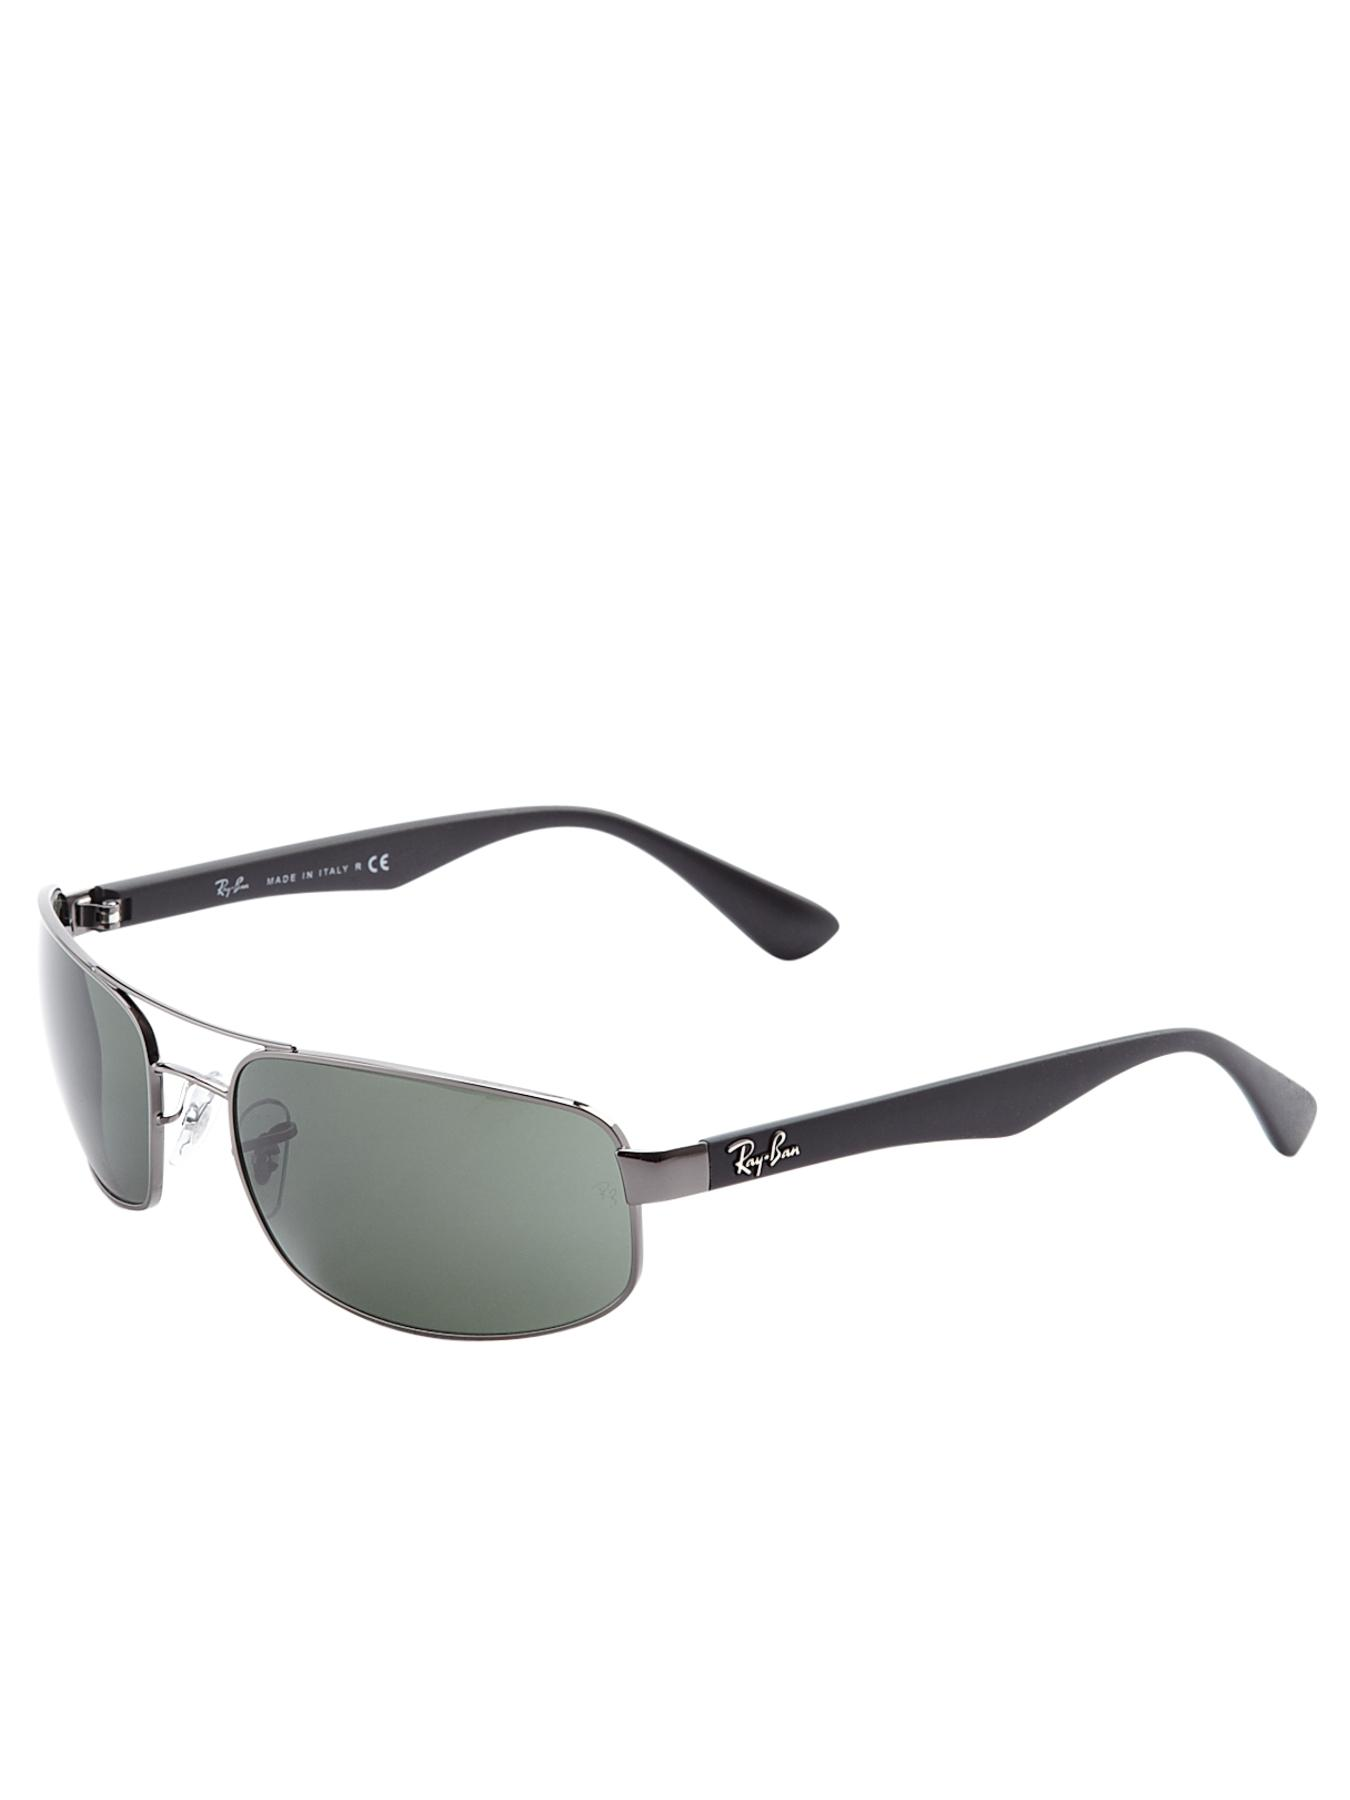 ray ban classic aviator uk  ray ban sunglasses